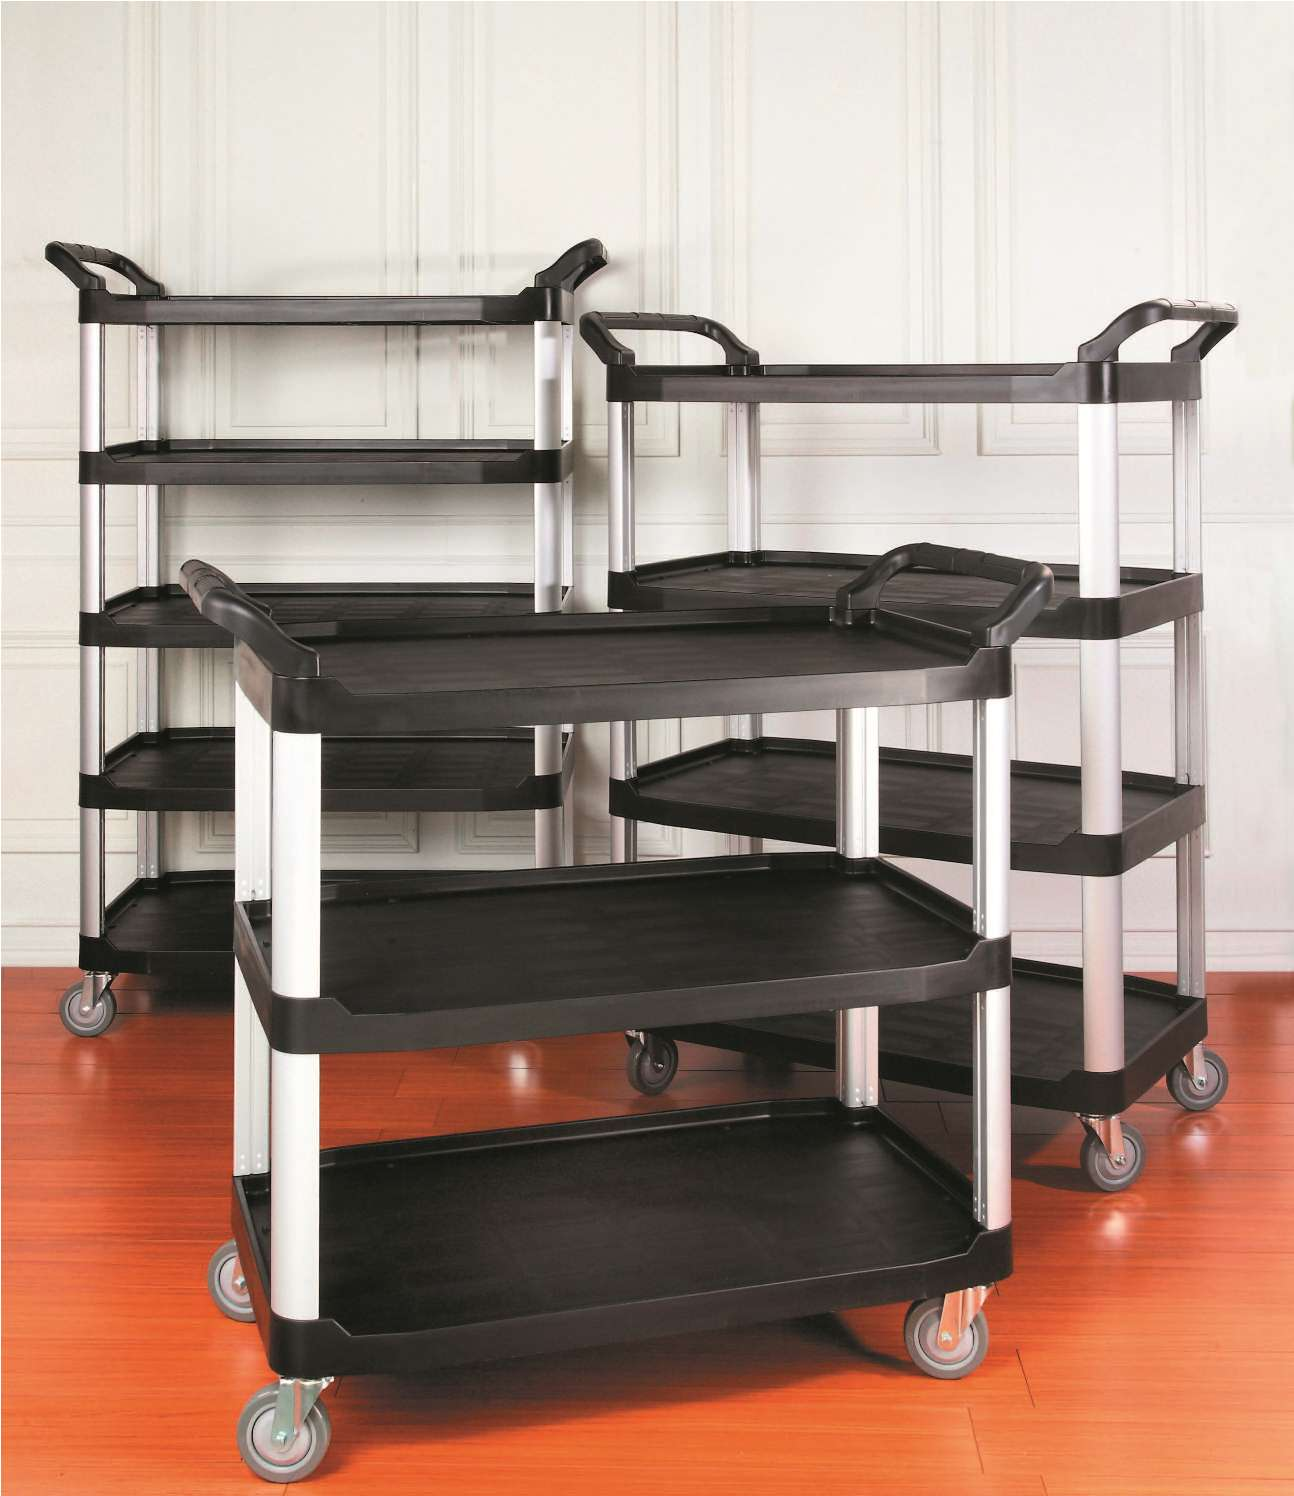 TB-4091-55BKWH Foodservice Cart (Large, 5-shelf, black & white) - TB-4091-55BKWH Foodservice Cart (Large, 5-shelf, black & white)